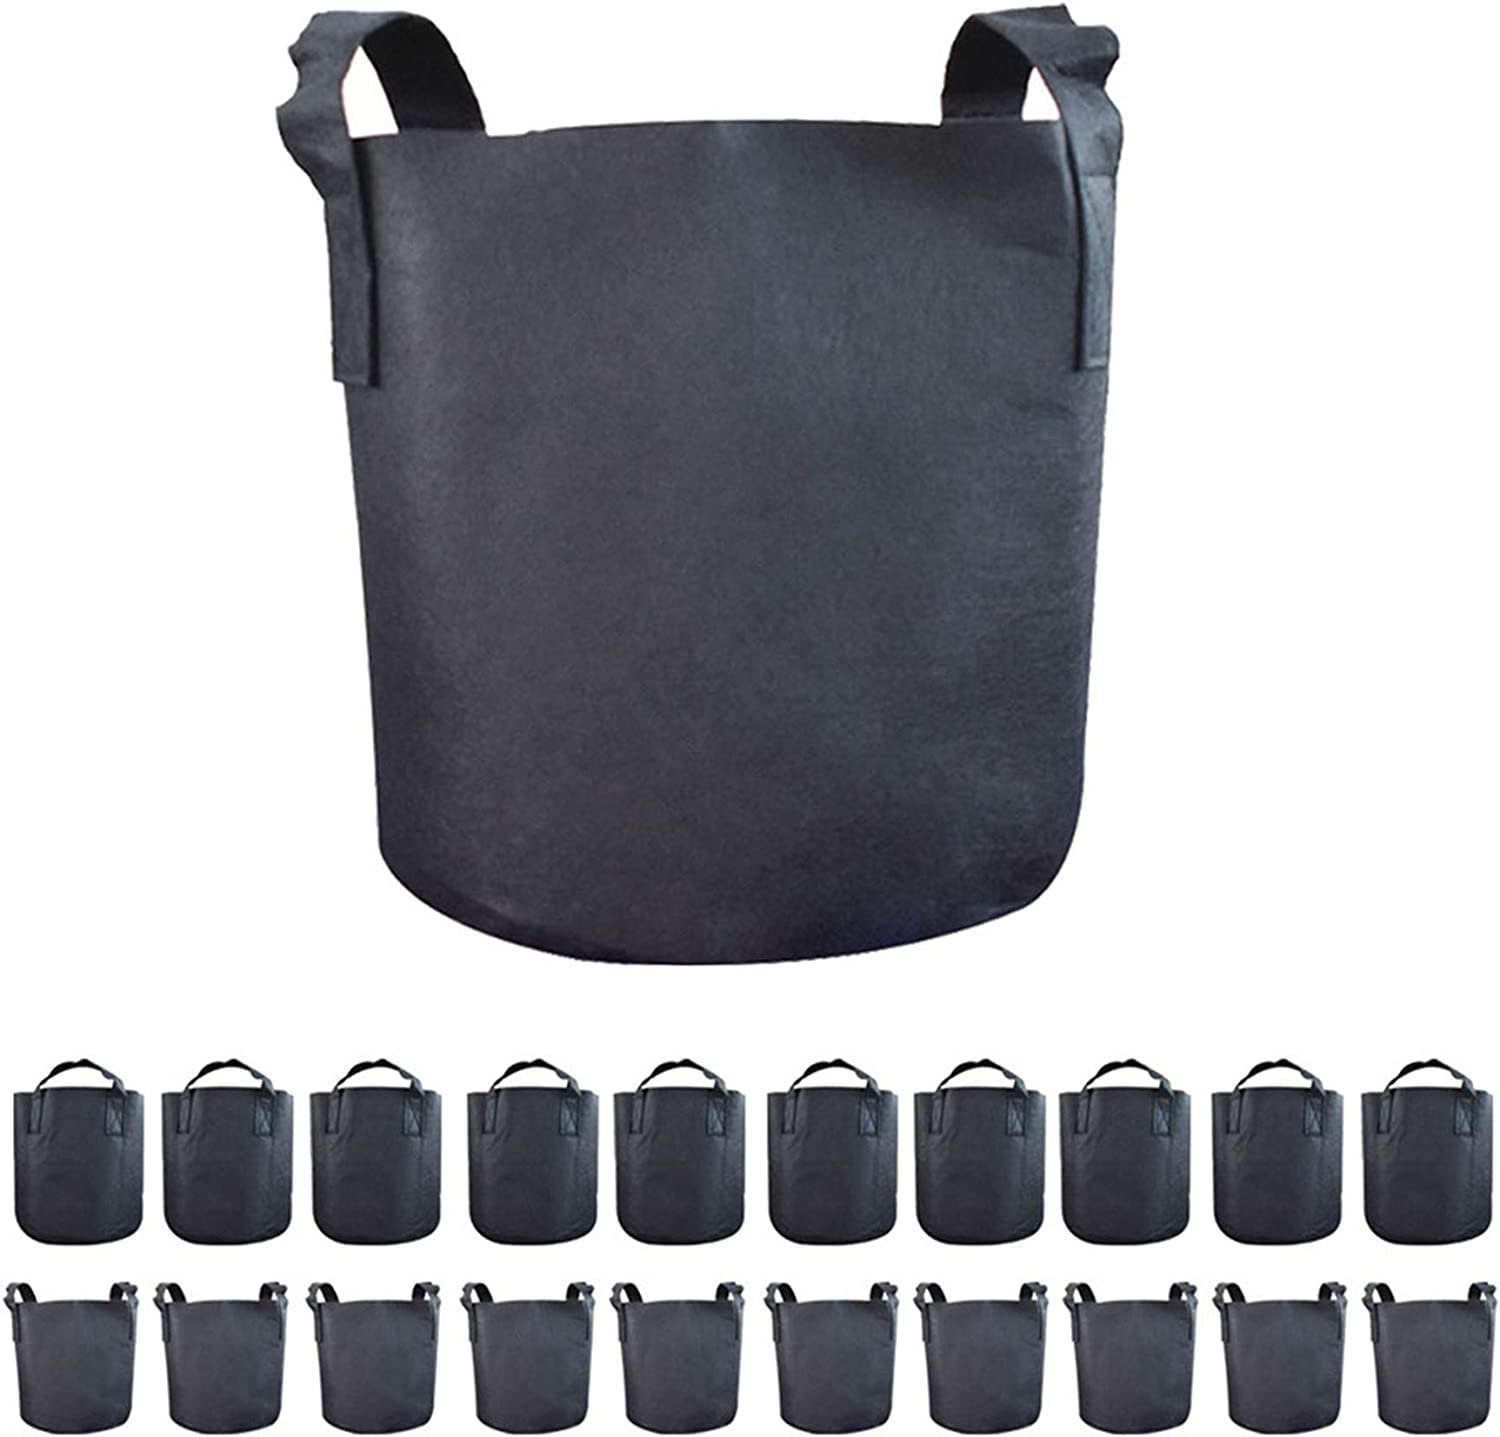 labworkauto Grow Bags Fabric Max SEAL limited product 58% OFF Bag Handl Pots Plant with